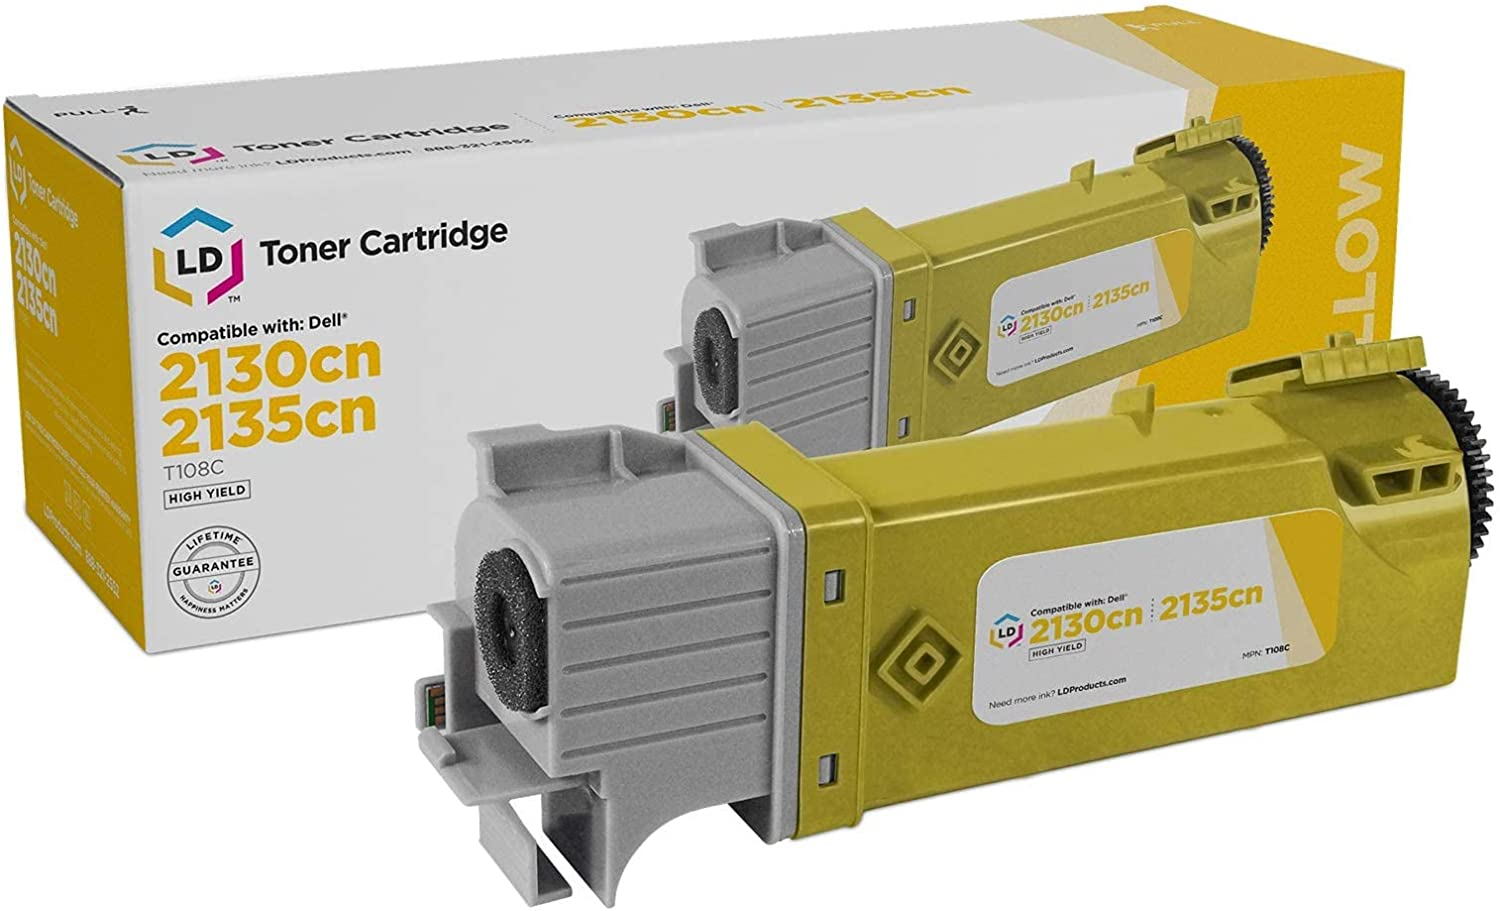 LD Compatible Toner Cartridge Replacement for Dell 330-1438 T108C High Yield (Yellow)